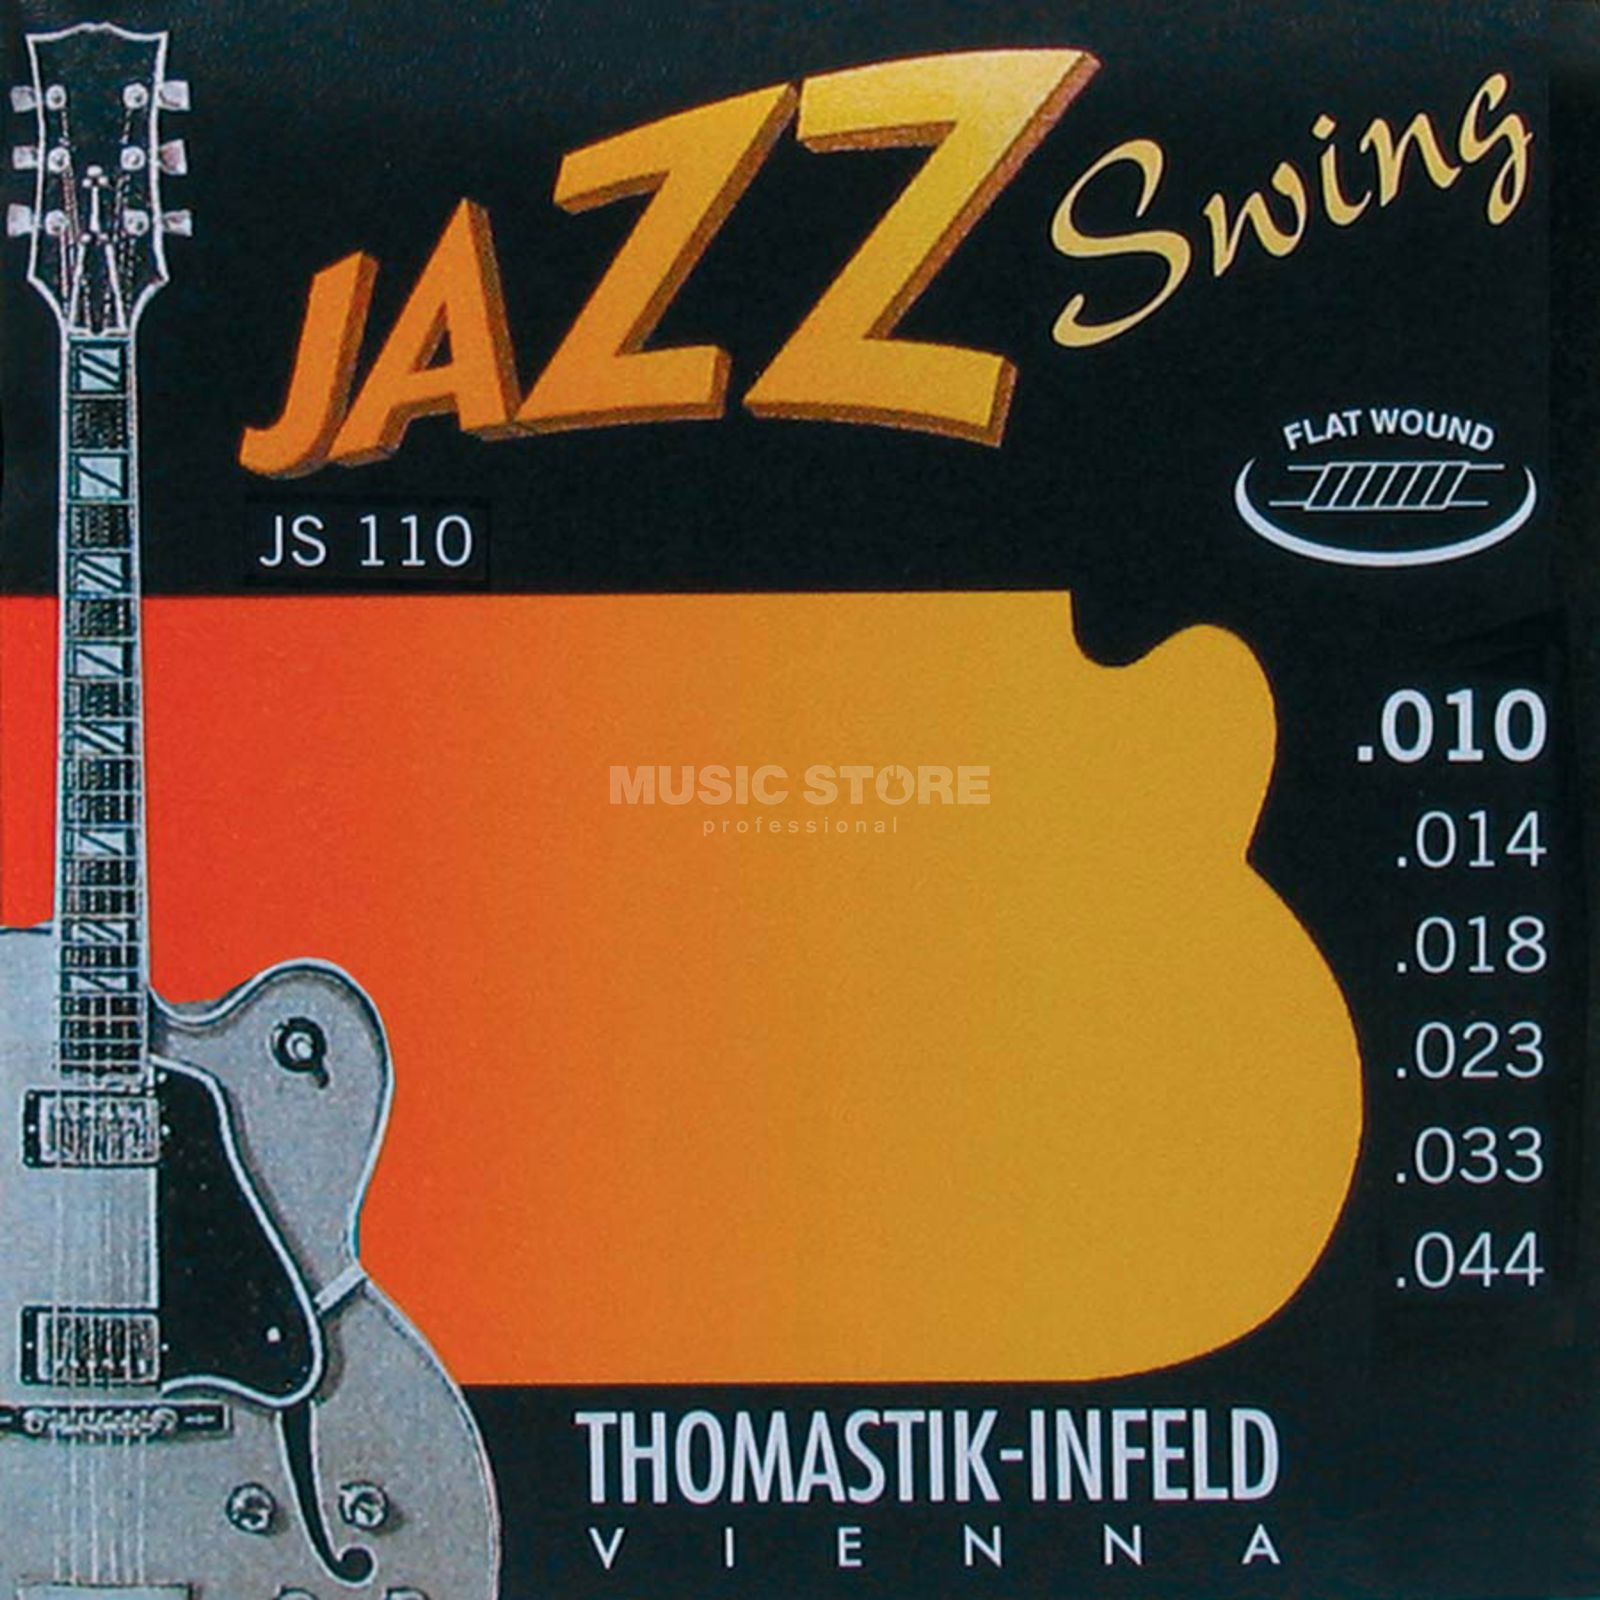 Thomastik Cordes guitare électrique, 10-44,Jazz Swing Filet plat Image du produit